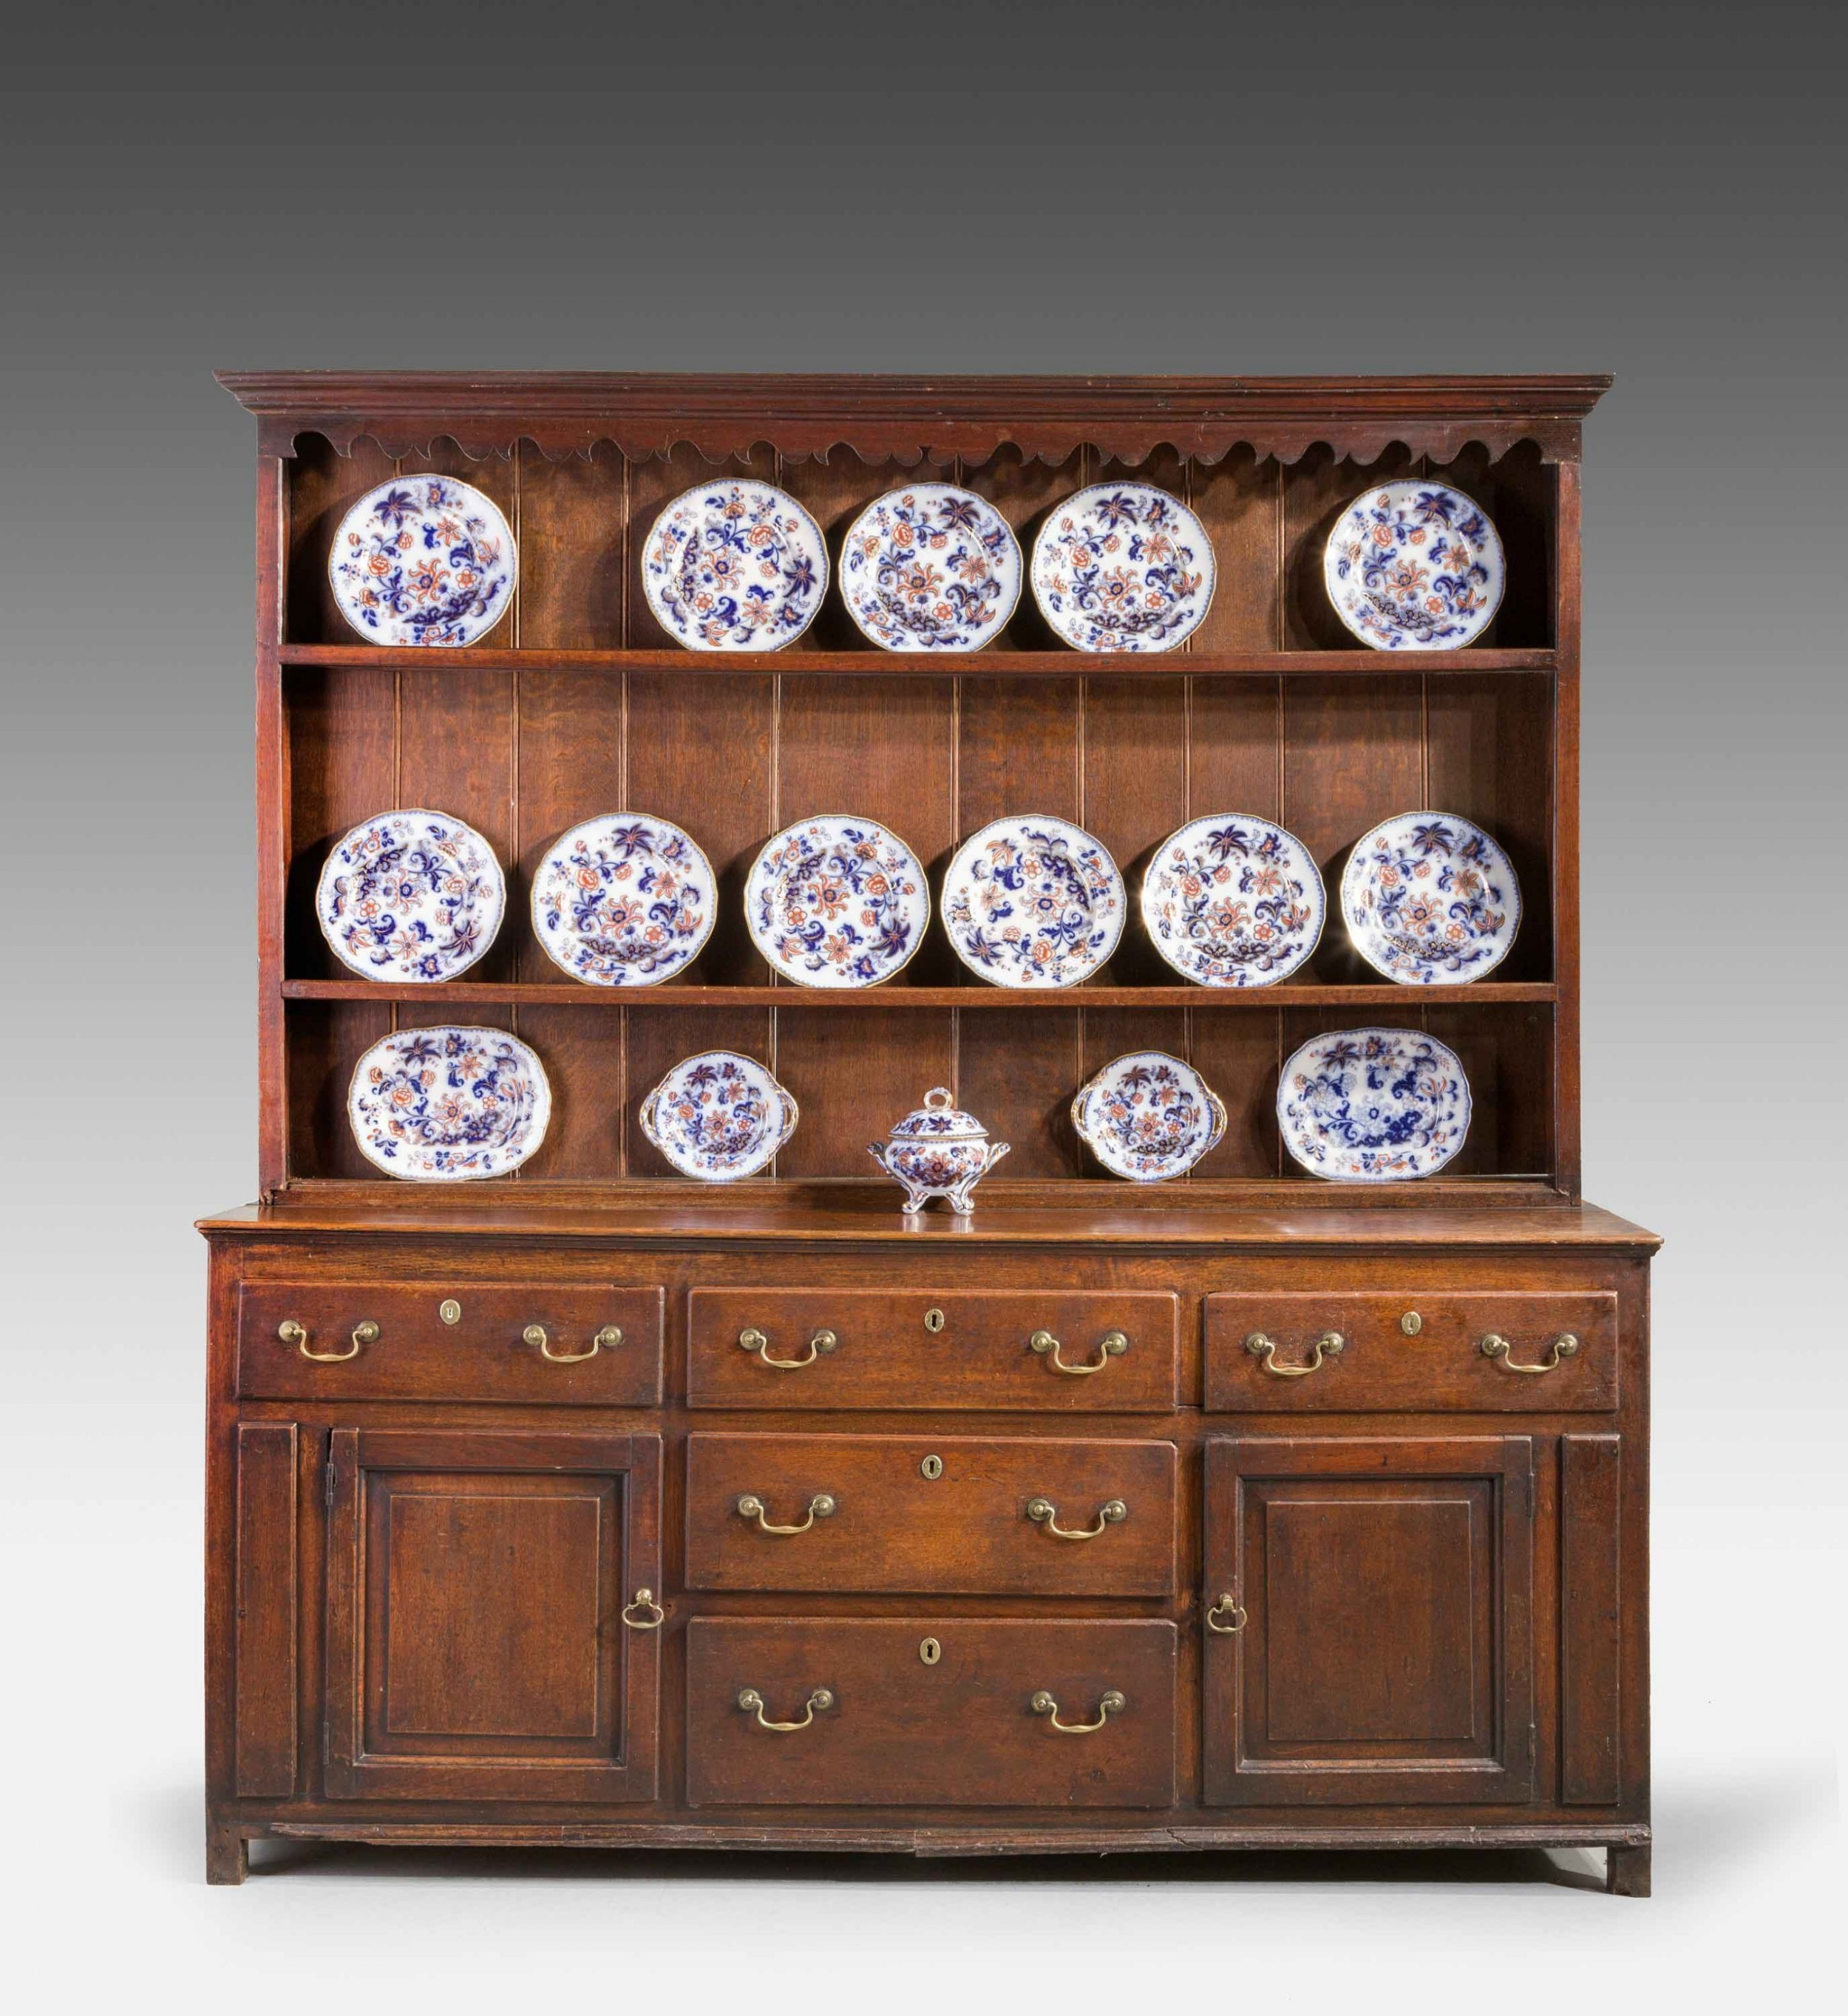 late 18th century oak dresser and rack